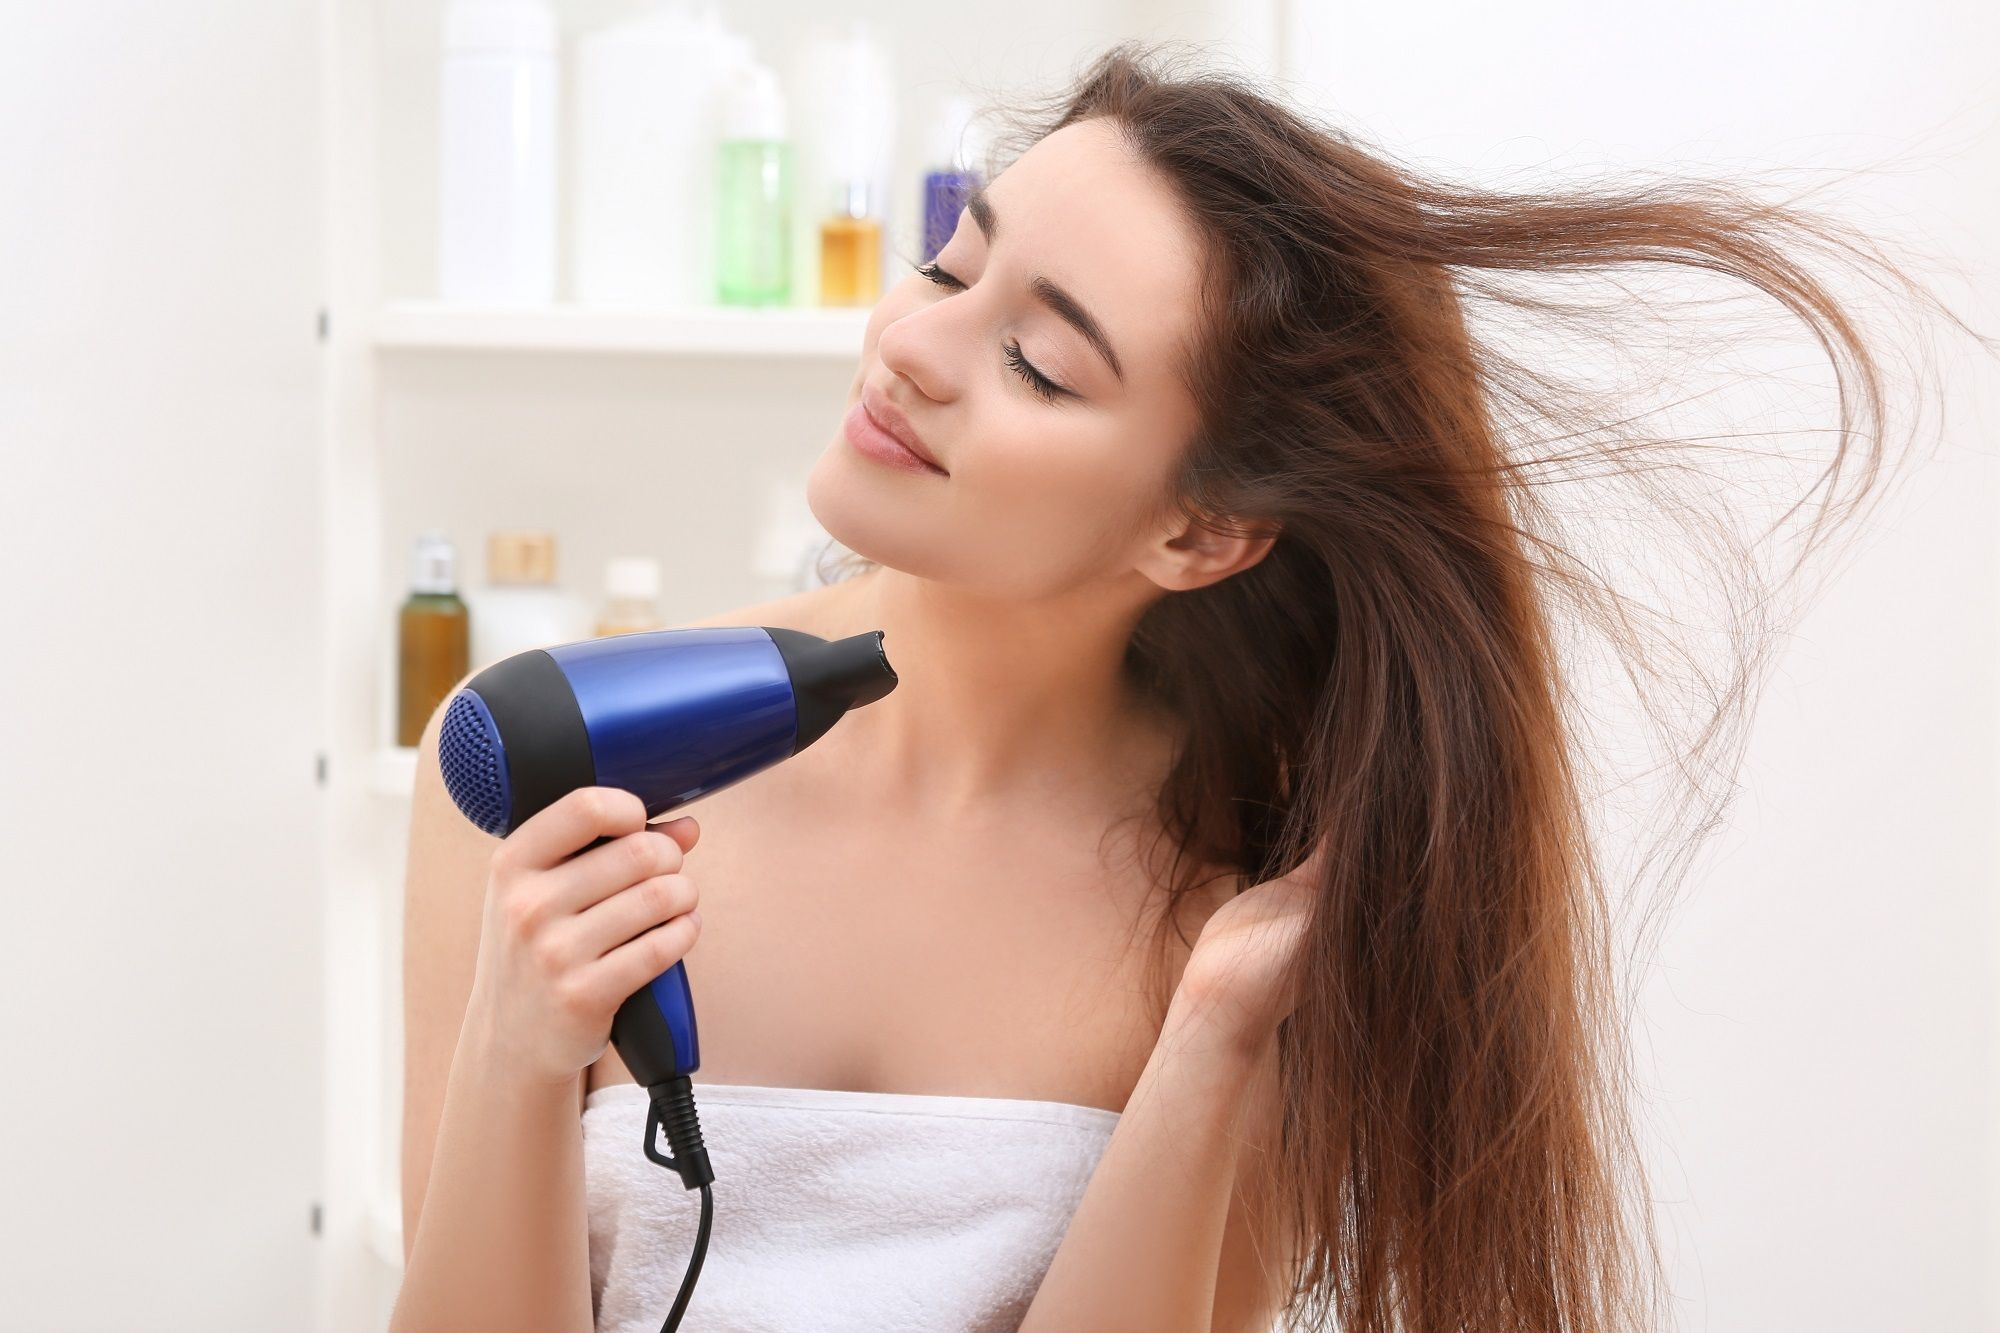 How to get beautiful hair: Closeup shot of a woman wrapped in a white towel blow drying her long brown hair